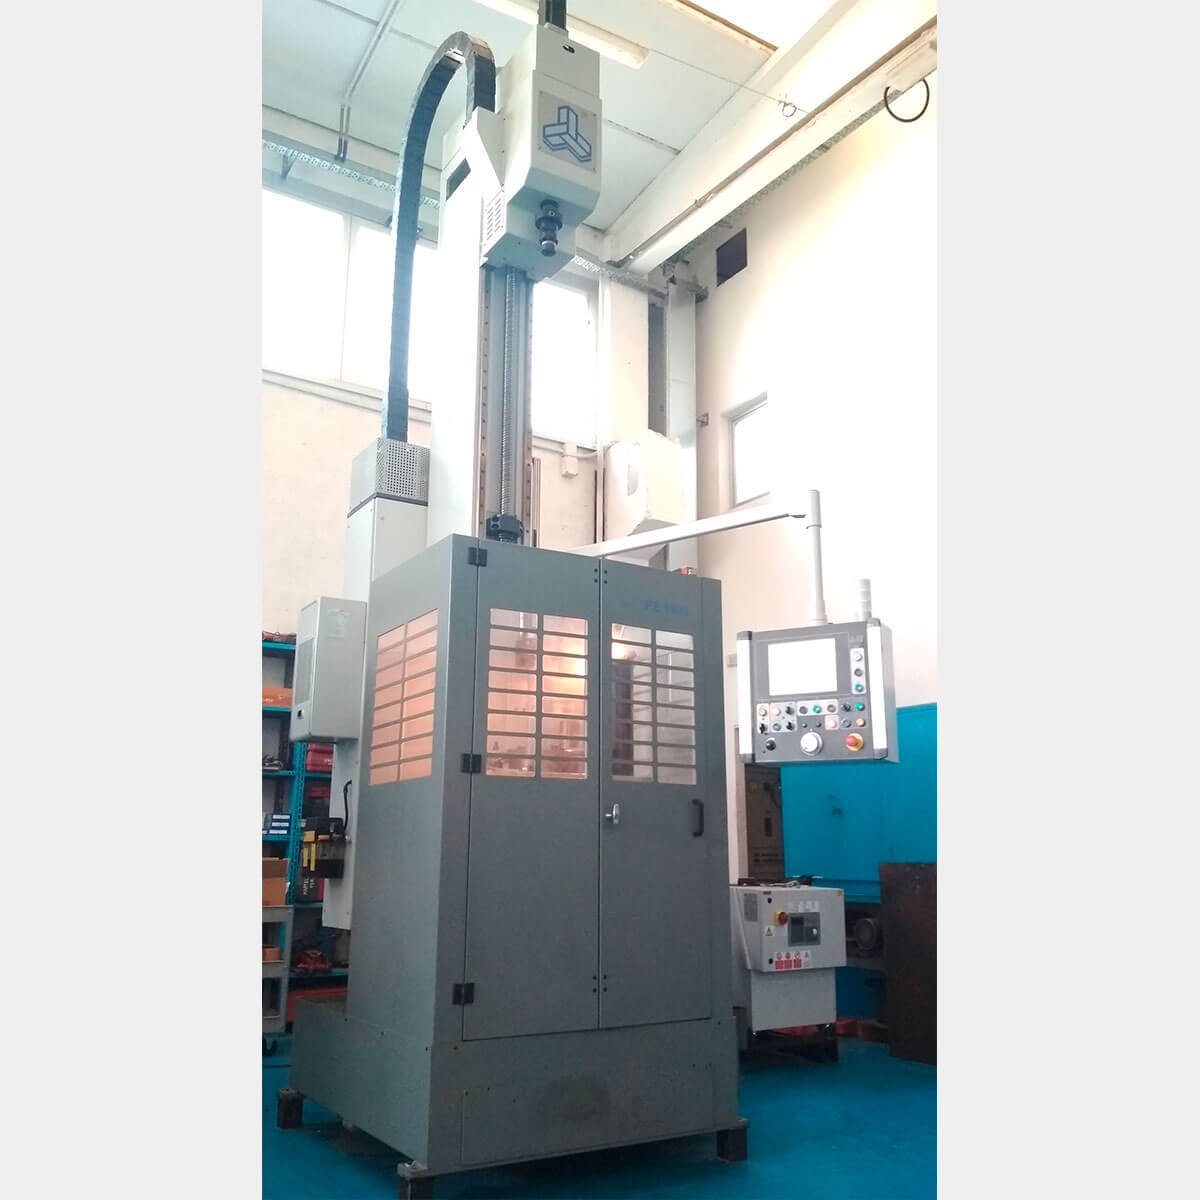 CAR PE-1500 Bruñidora Vertical CNC